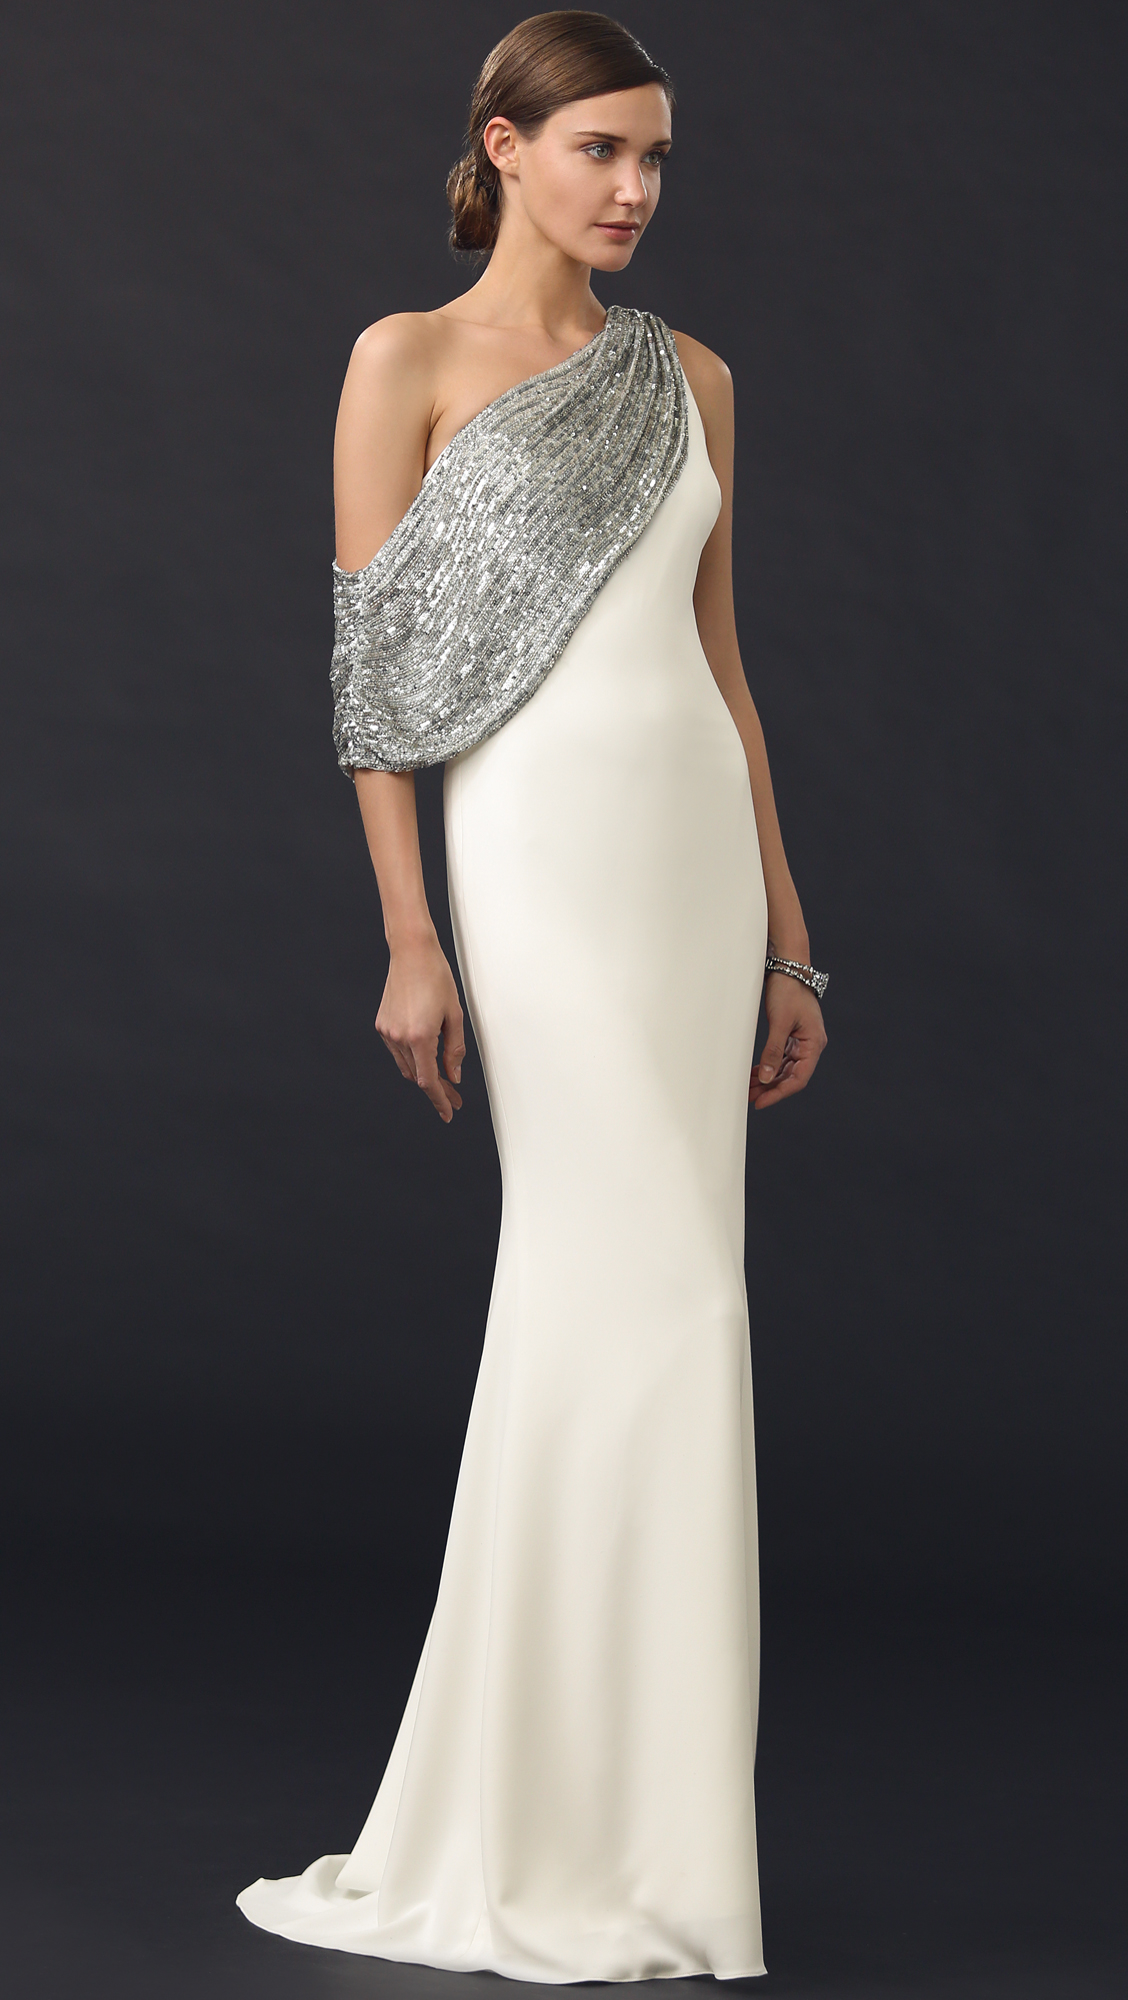 Stylized Badgley Mischka Collection Light Ivory Beaded Shoulder Drape Gown Light Ivory Product 4 591952054 Normal Badgley Mischka Dresses Wynne Short Sleeve Badgley Mischka Dresses Size wedding dress Badgley Mischka Dresses